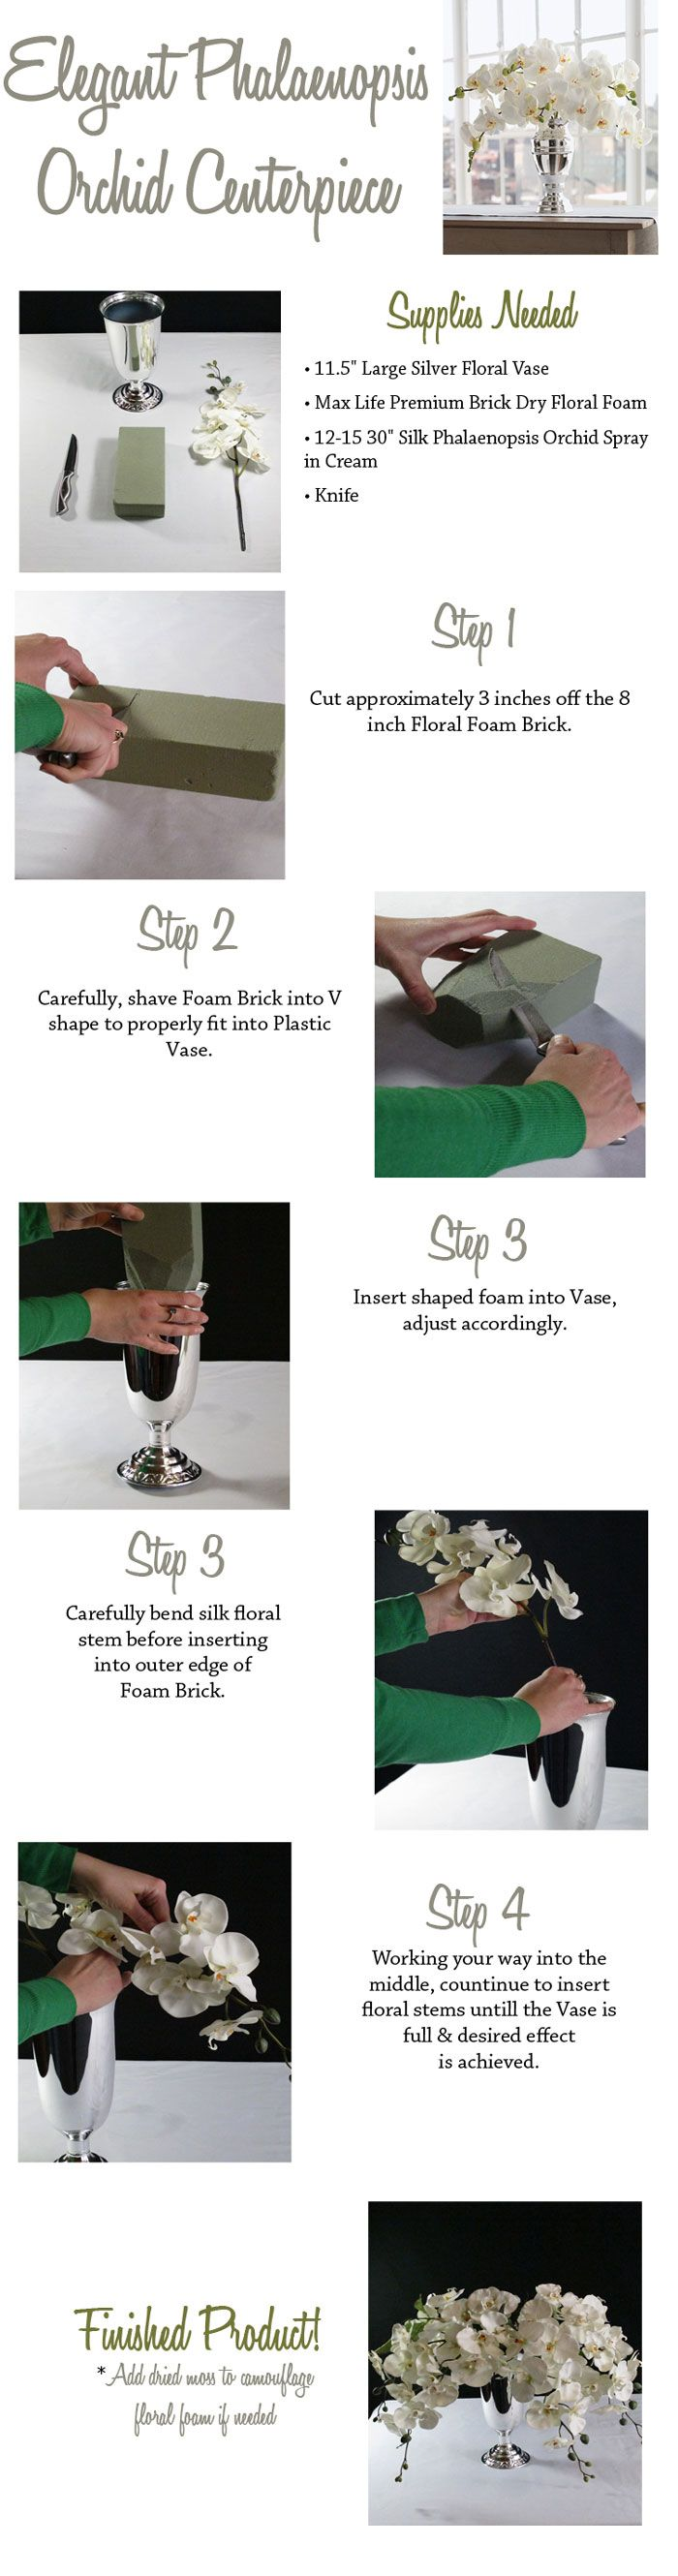 Create your elegant centerpieces with silk flowers from Afloral.com.  It is an inexpensive alternative and will create a lasting design you can use at your wedding, event, holidays or home for years to come.